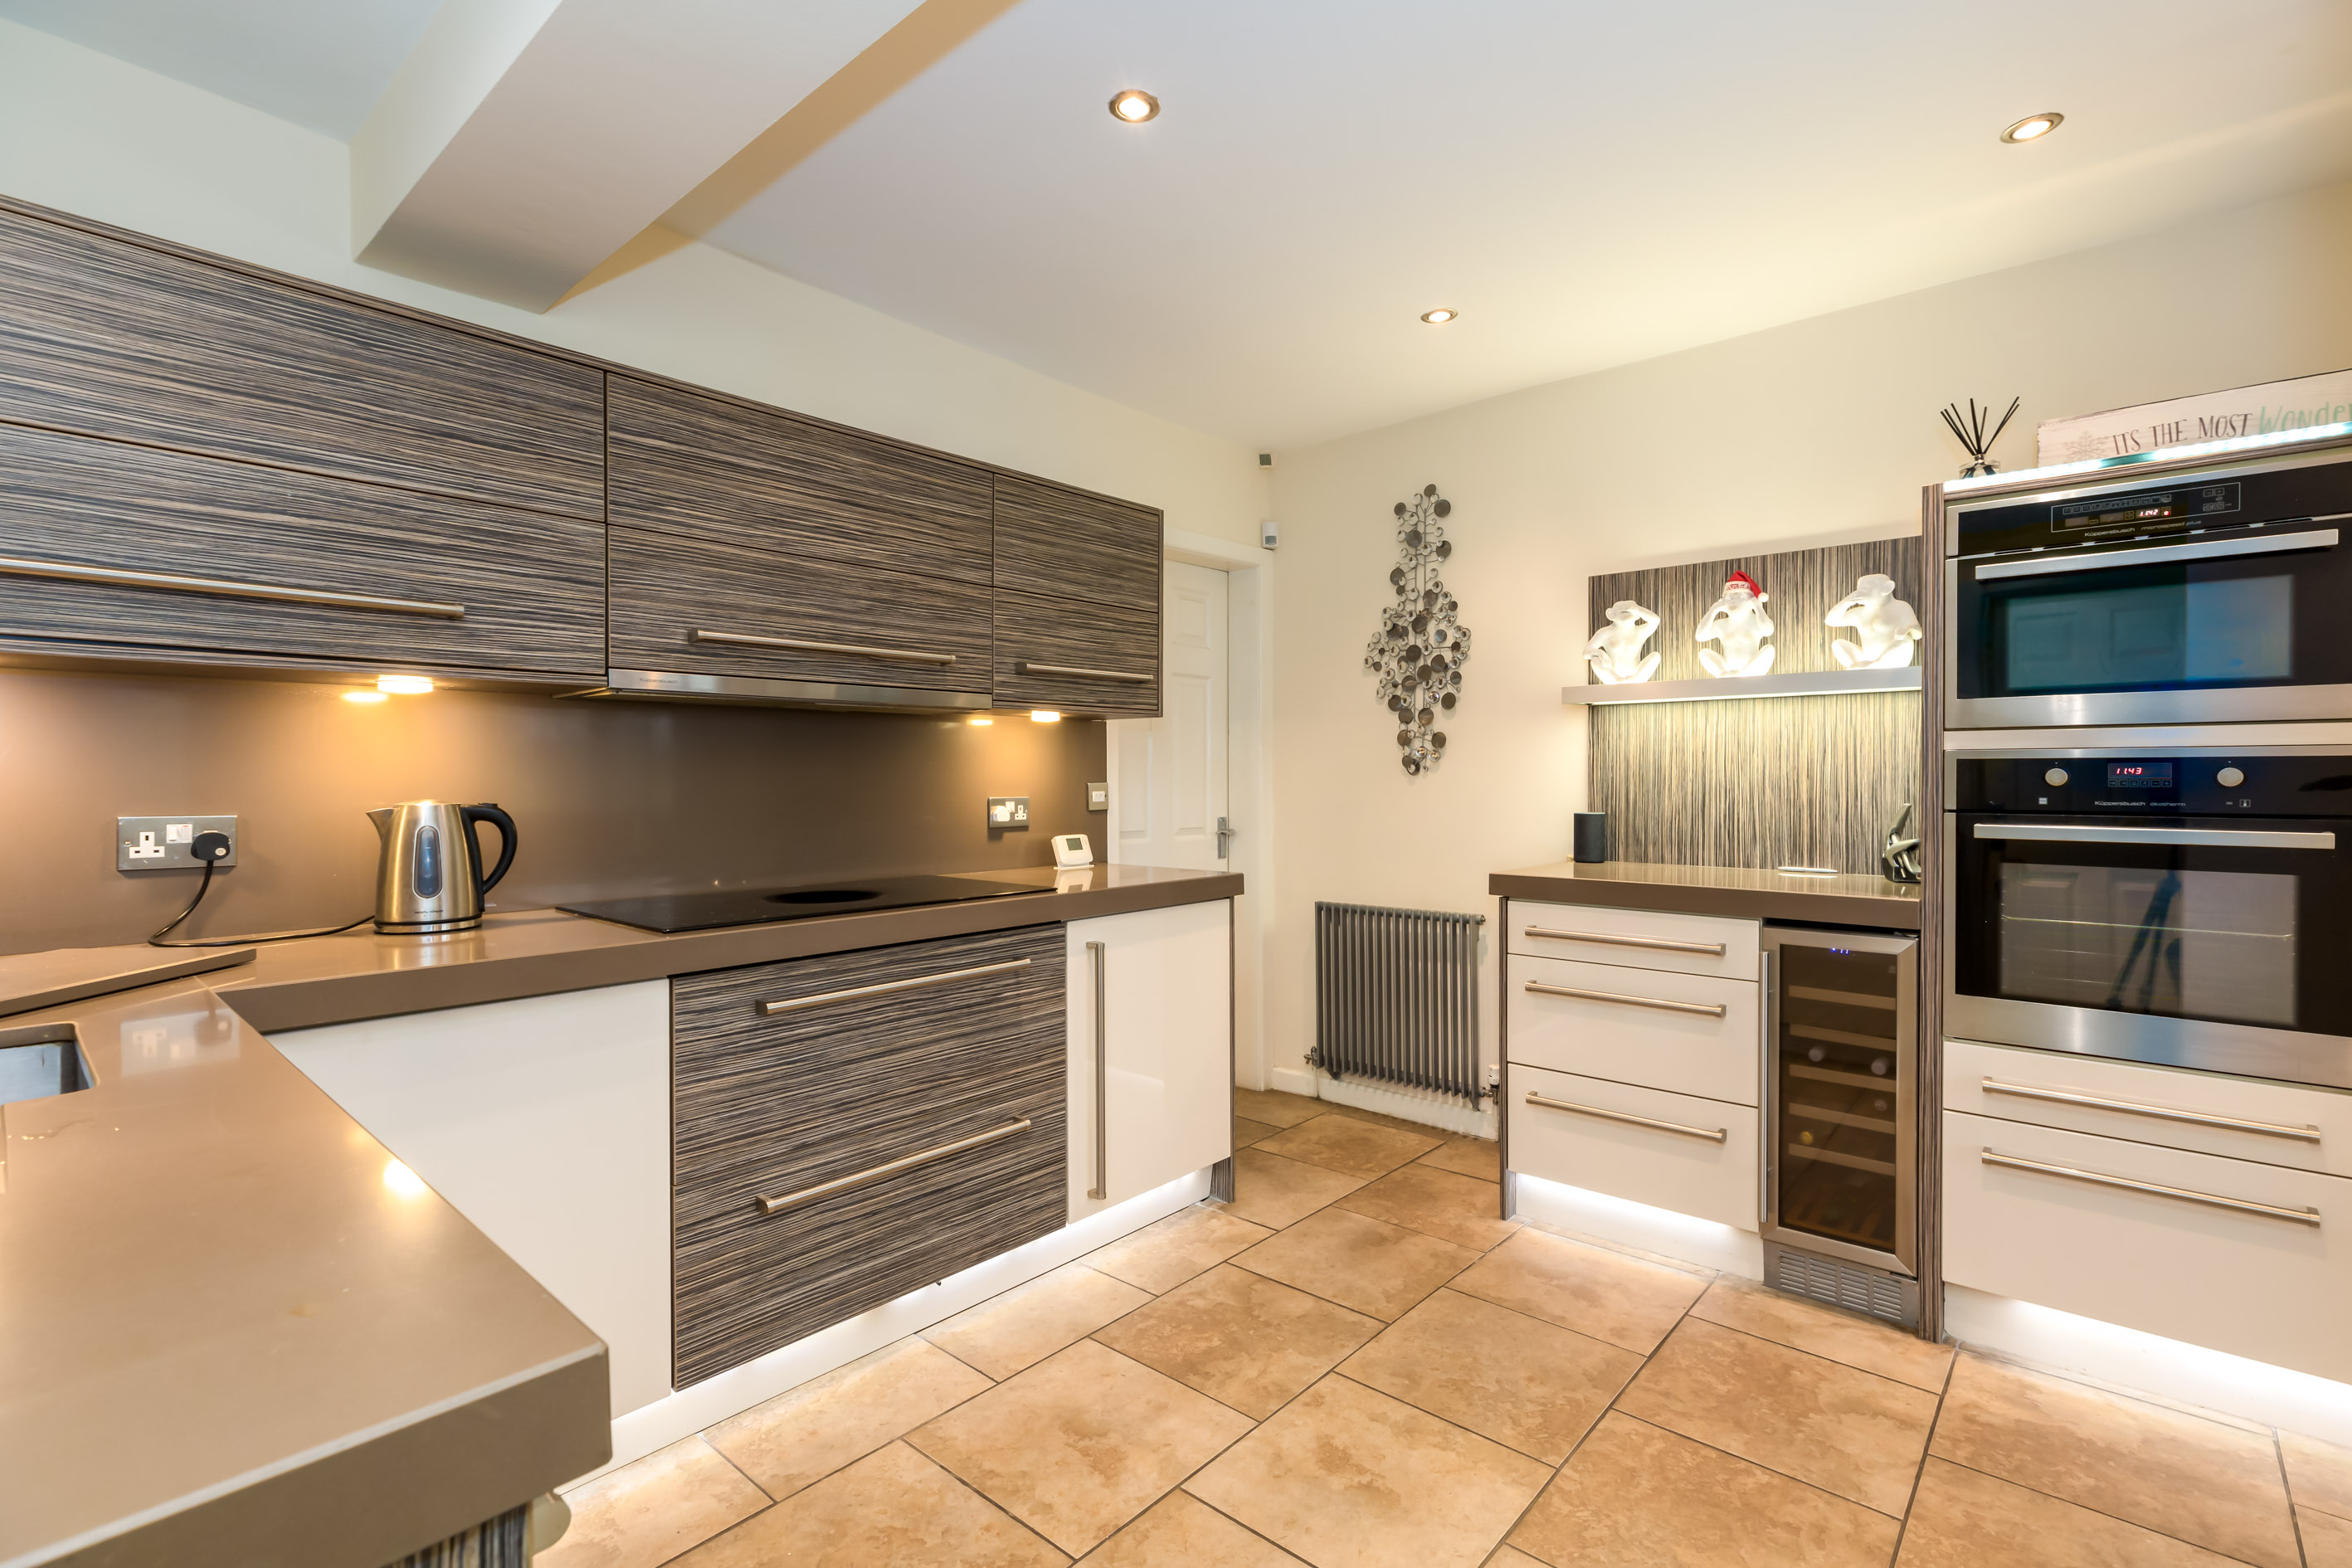 Longshaw Avenue, Billinge, WN5 7JT - EAID:Regan Hallworth, BID:Regan & Hallworth- Wigan